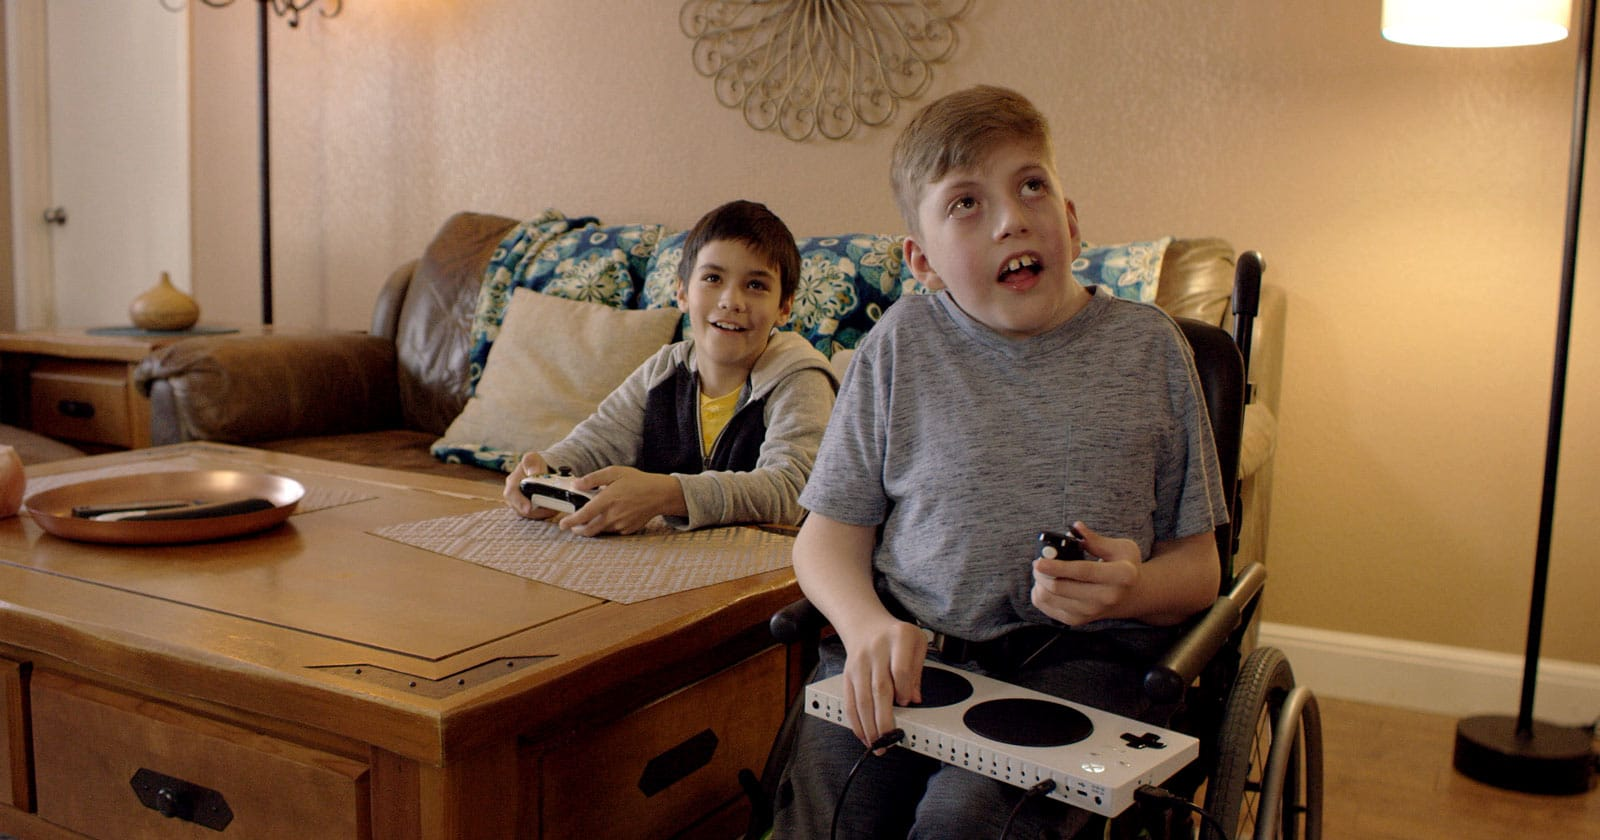 Disabled Boy playing with microsoft adapted controller